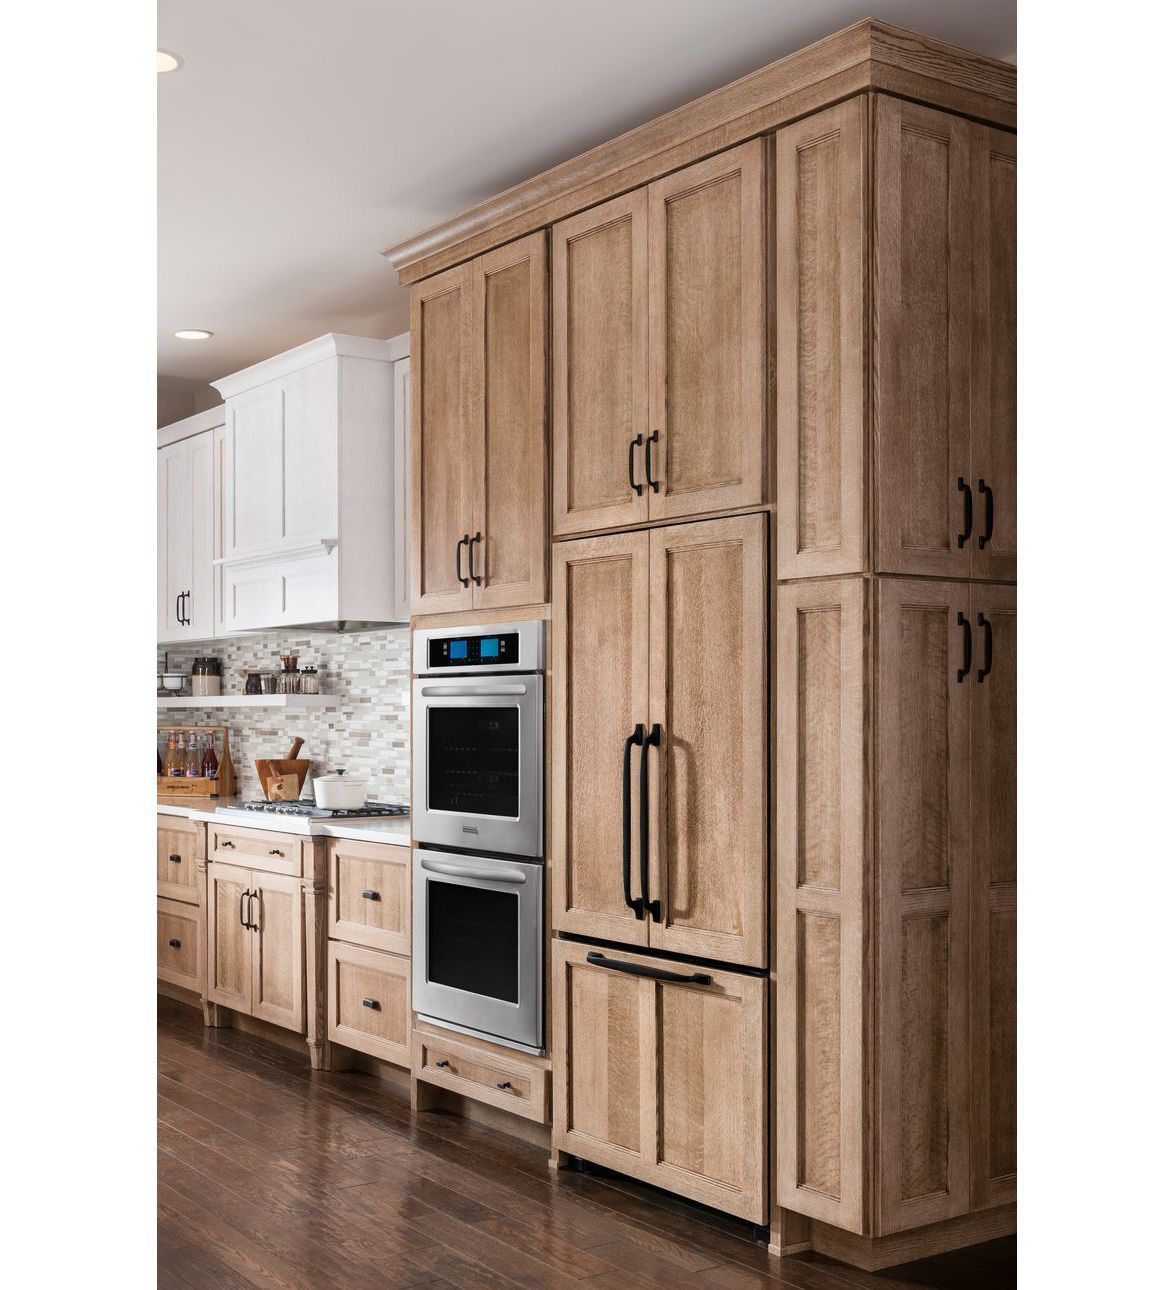 30-Inch Convection Double Wall Oven, Architect® Series II